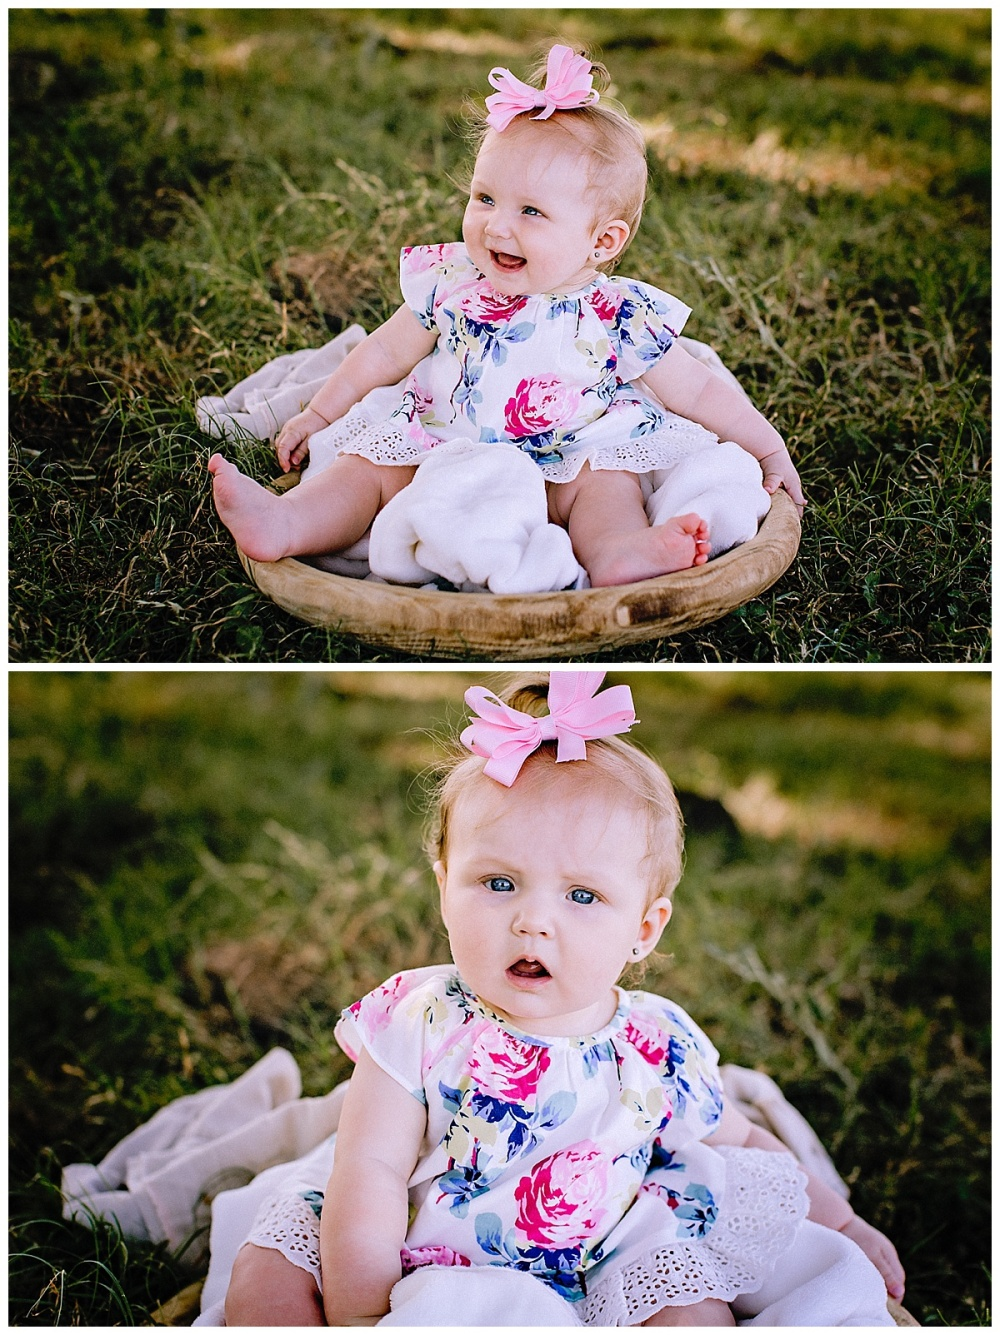 Carly-Barton-Photography-Family-Session-LaVernia-Texas-Saylor-6mos_0017.jpg